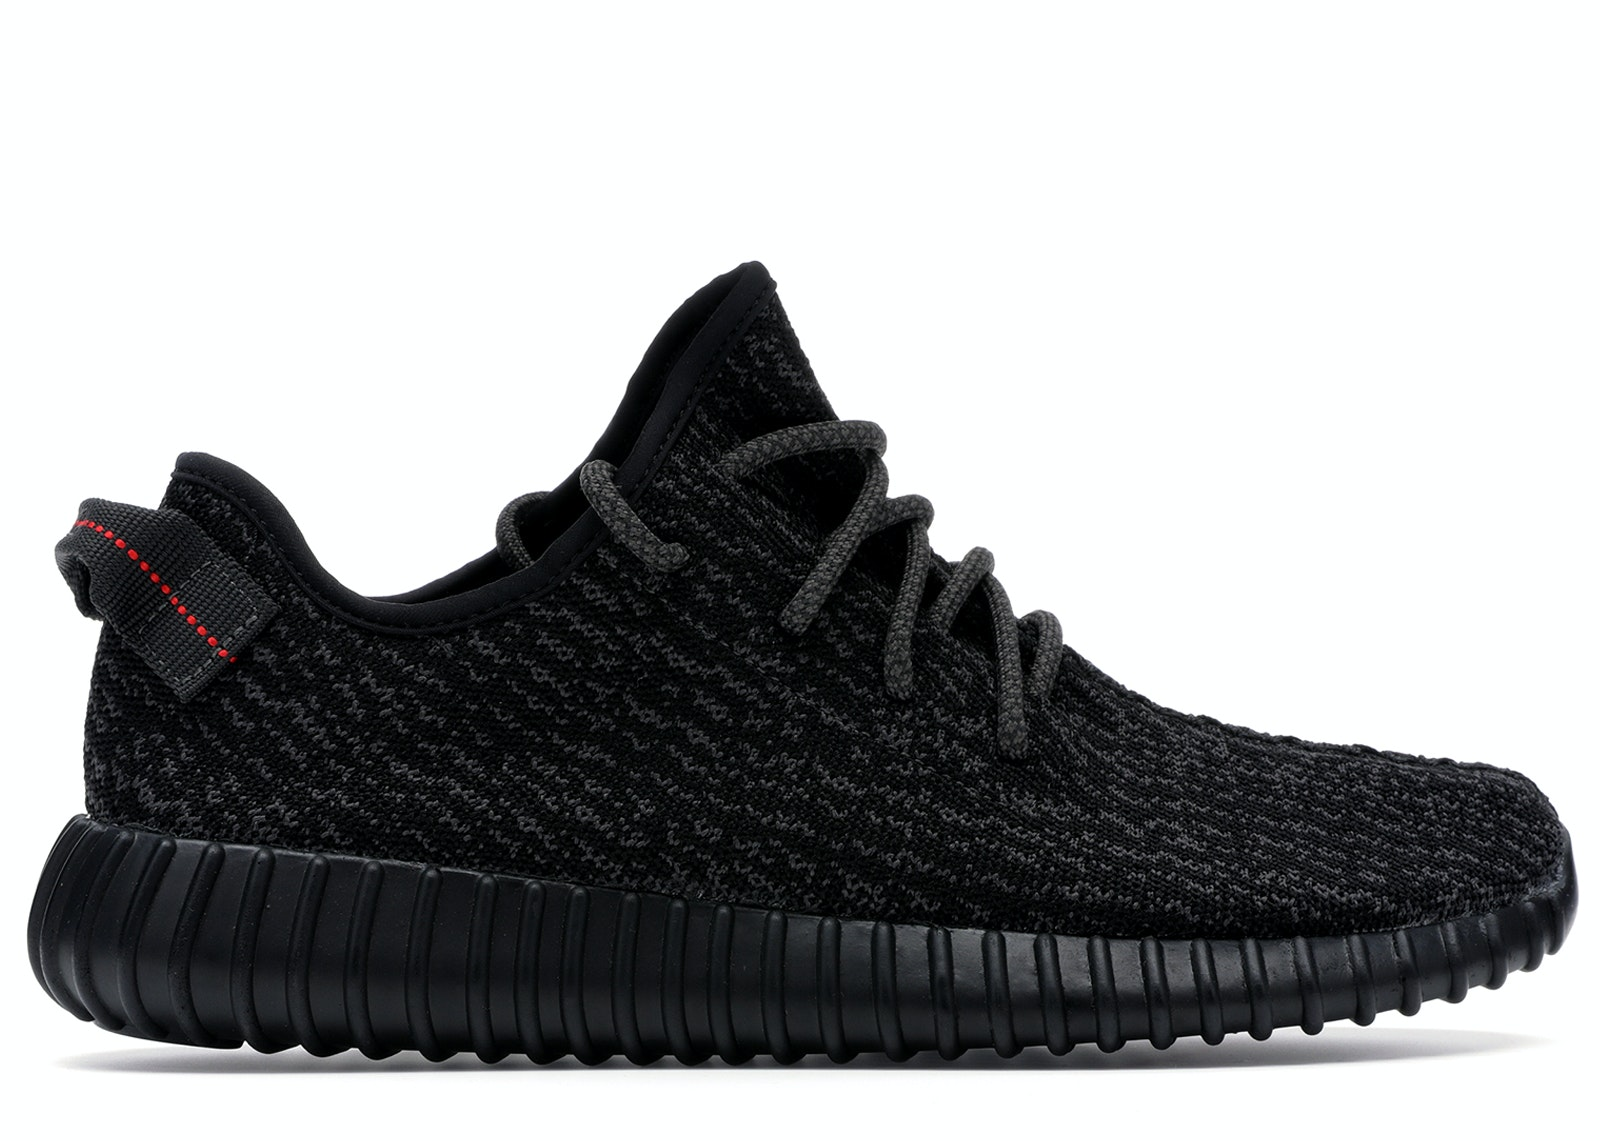 check out 9980a a6c93 ... adidas yeezy 550 price